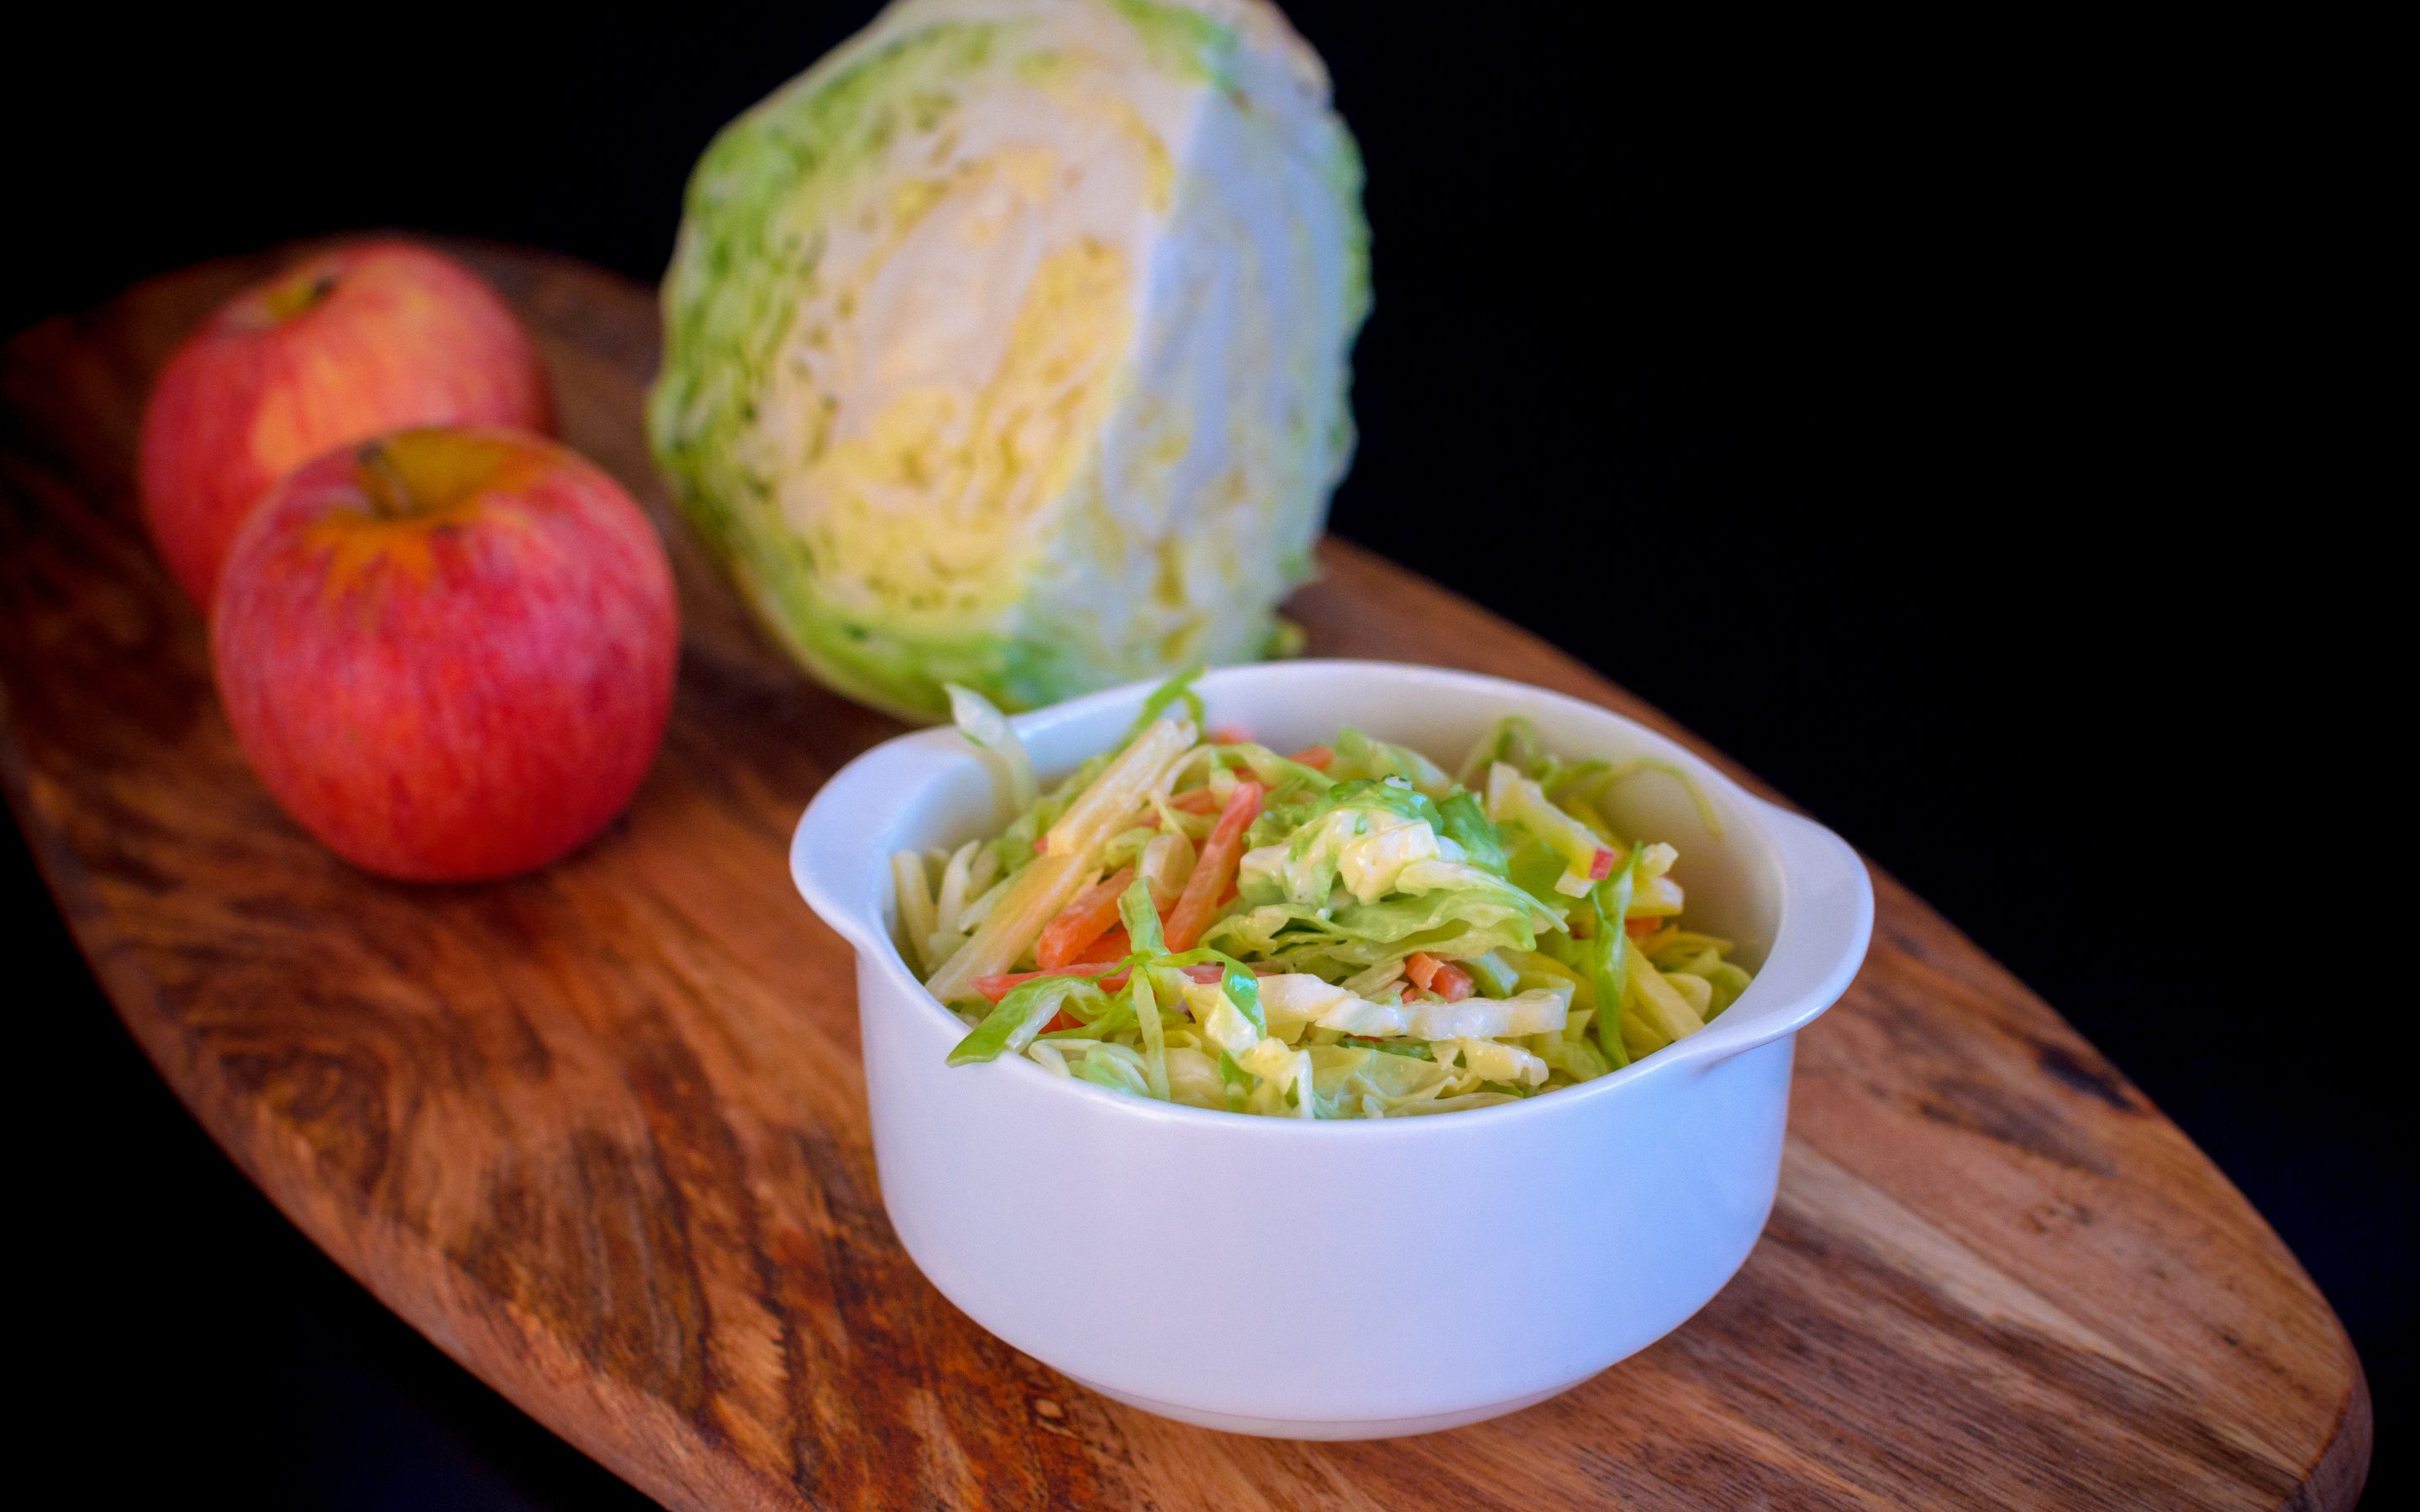 Homemade coleslaw salad in a white plate with cabbage and apple on a wooden board on a black background.